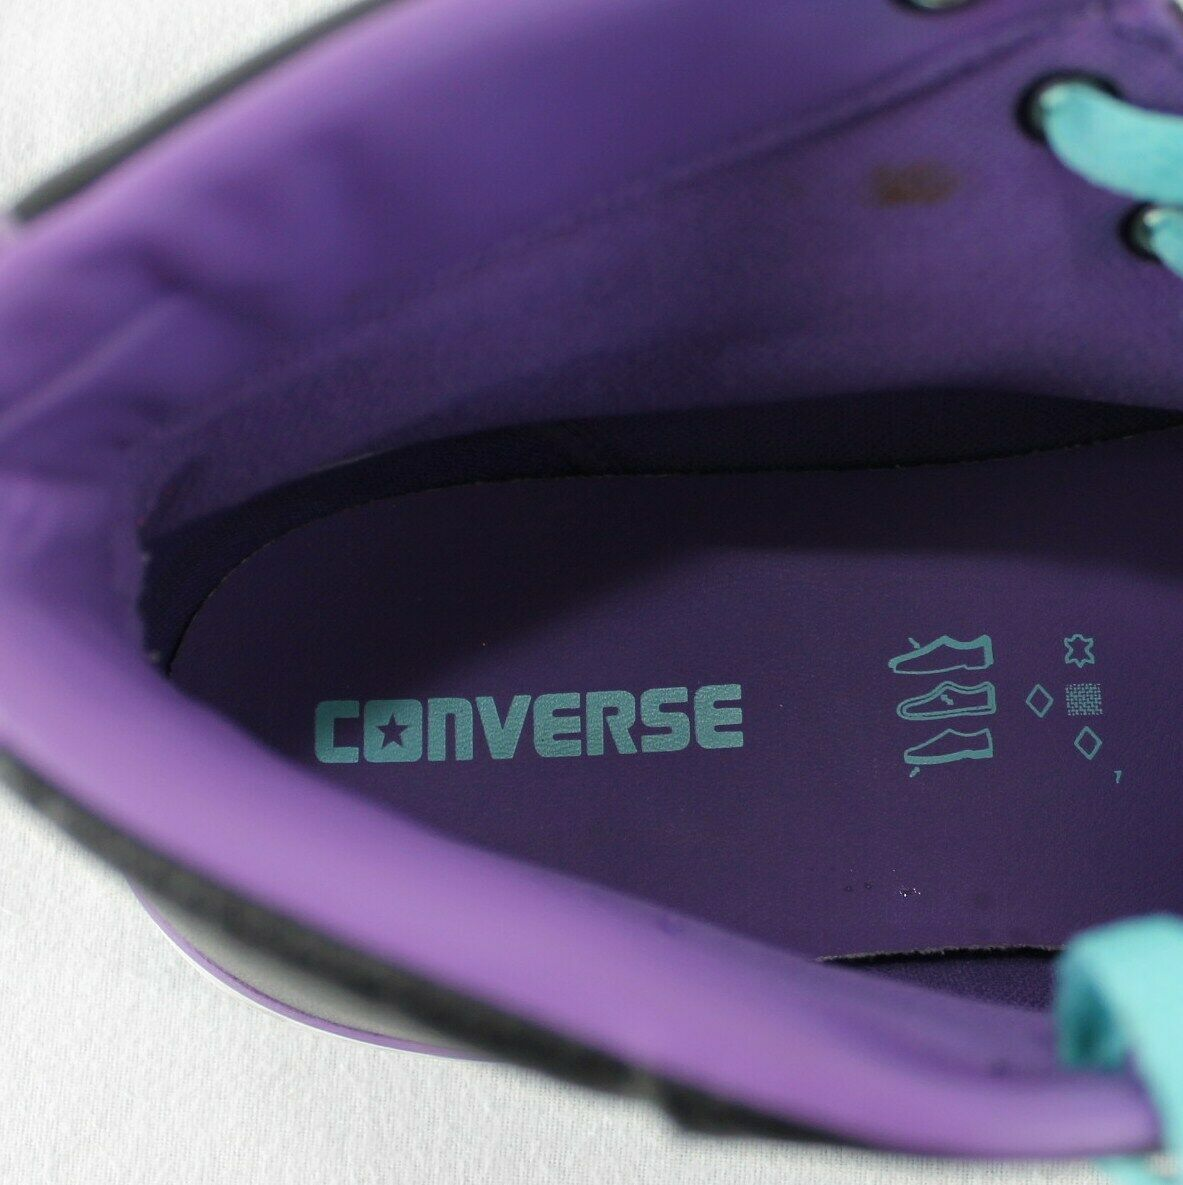 Converse All Star Leather High Top Shoes Mens 9 Womens 11 Black Blue Purple image 10